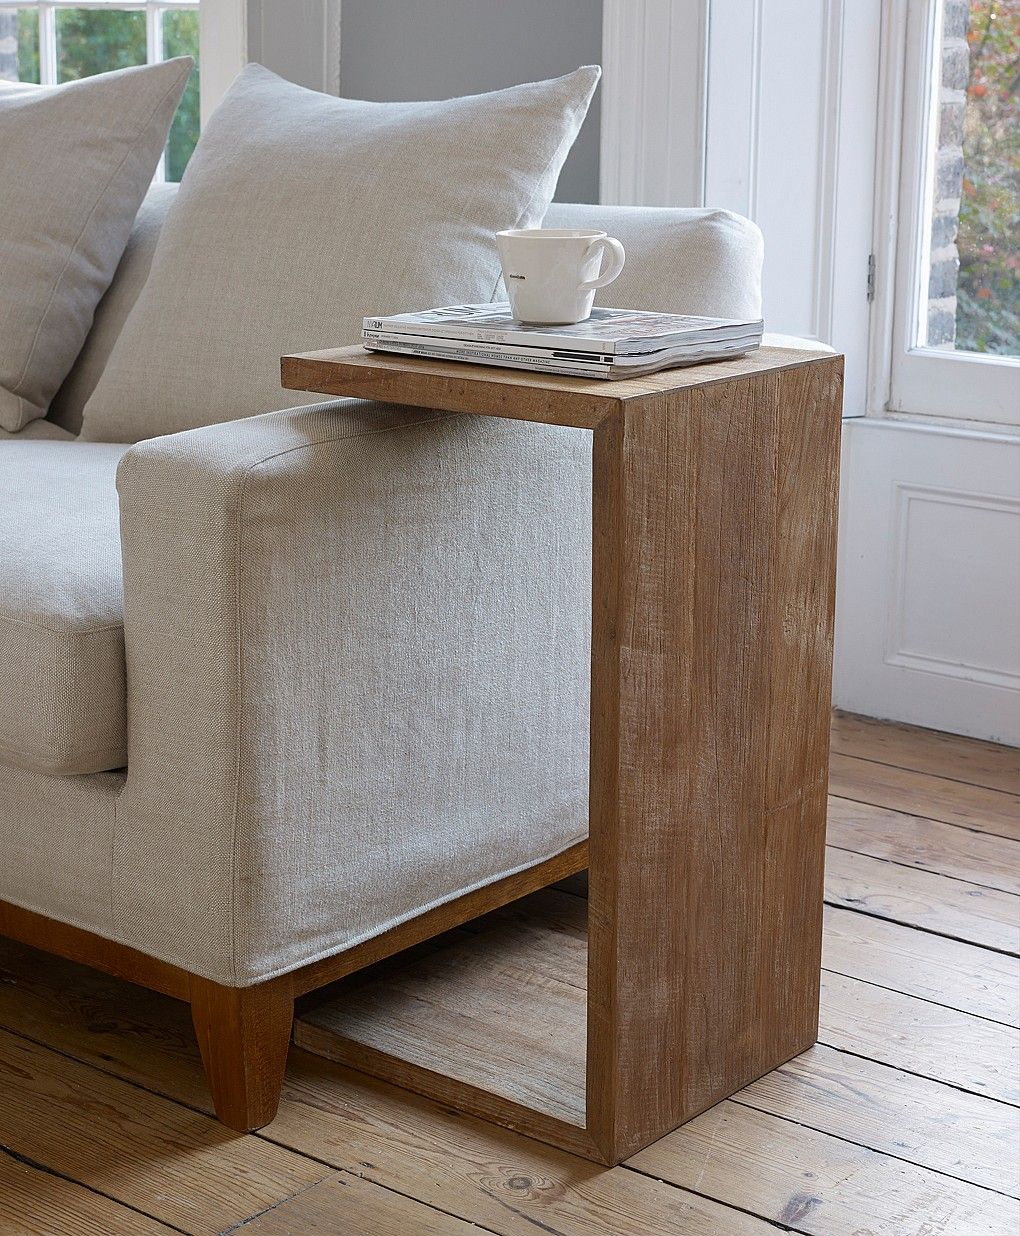 Latest Modern wooden coffee table designs 6